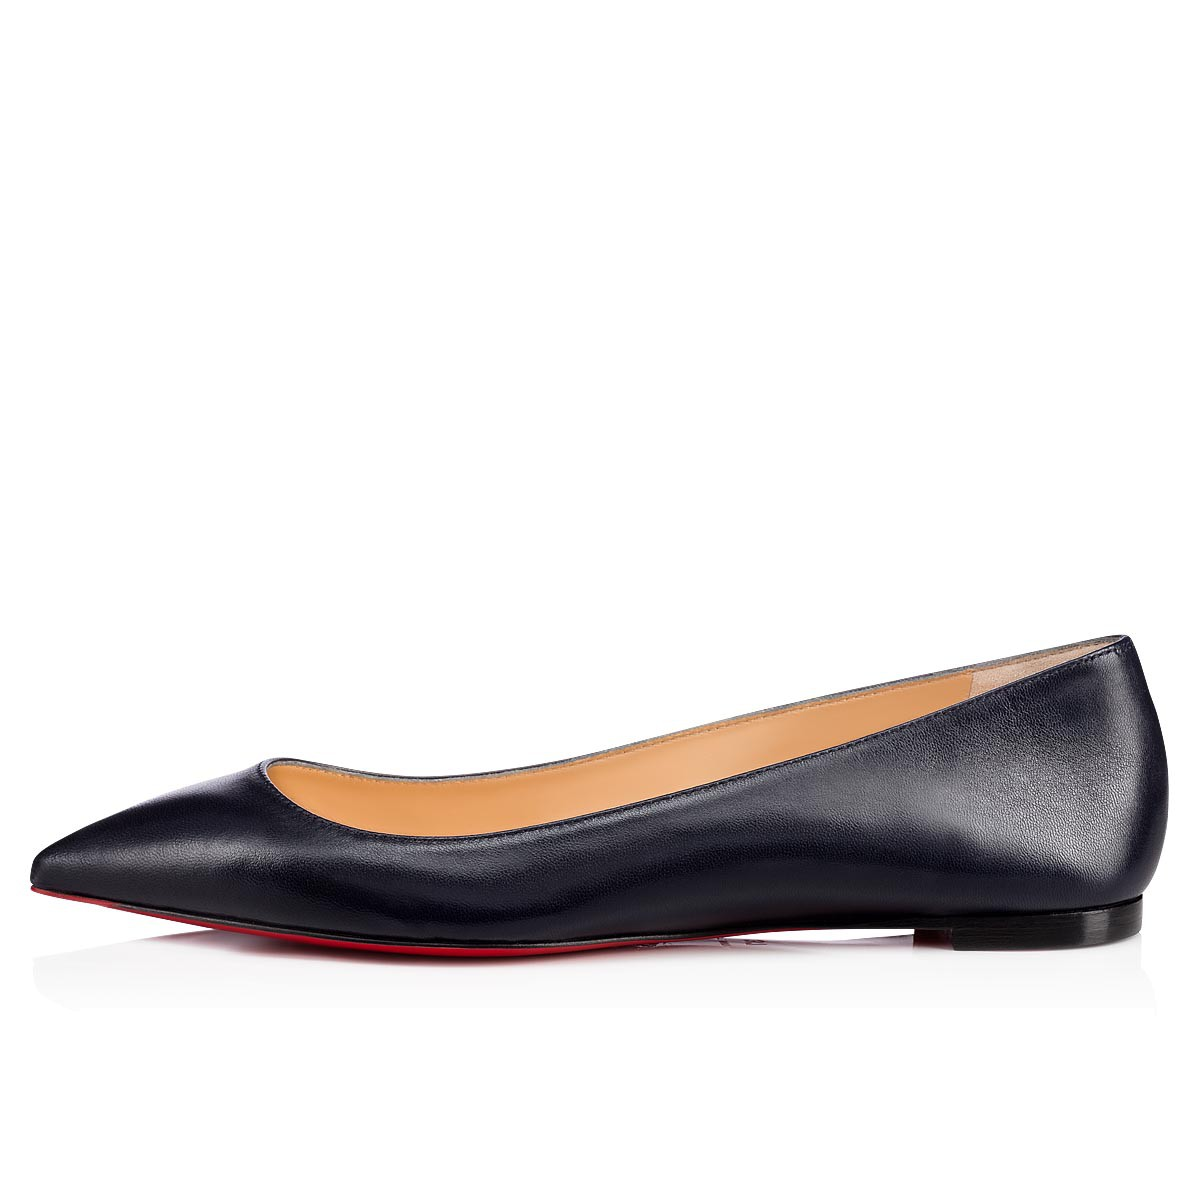 Women Shoes - Ballalla Nappa - Christian Louboutin